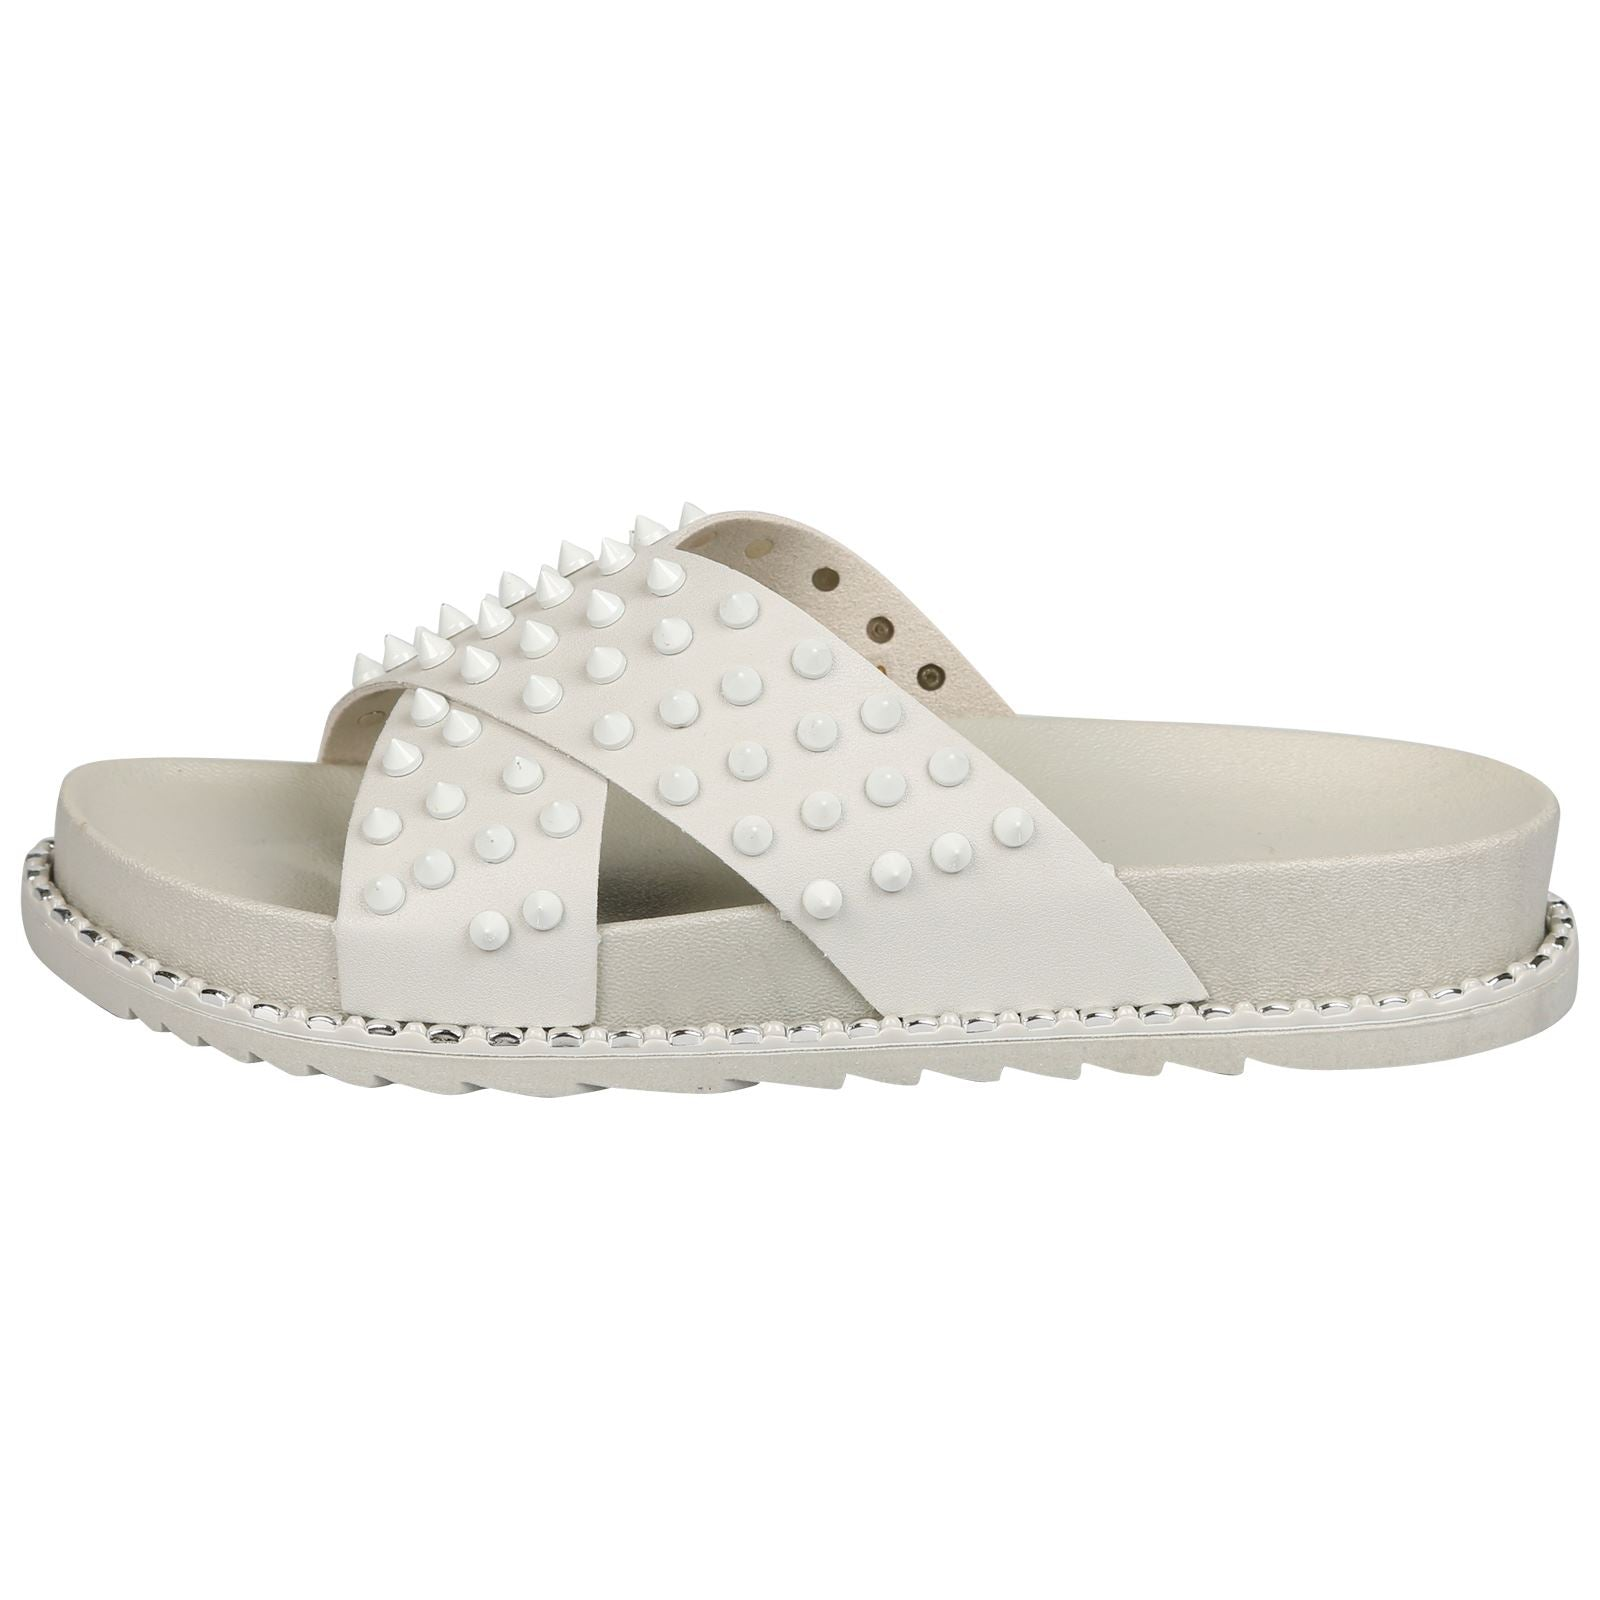 Mooya Studded Cross Strap Sliders in Grey Rubber